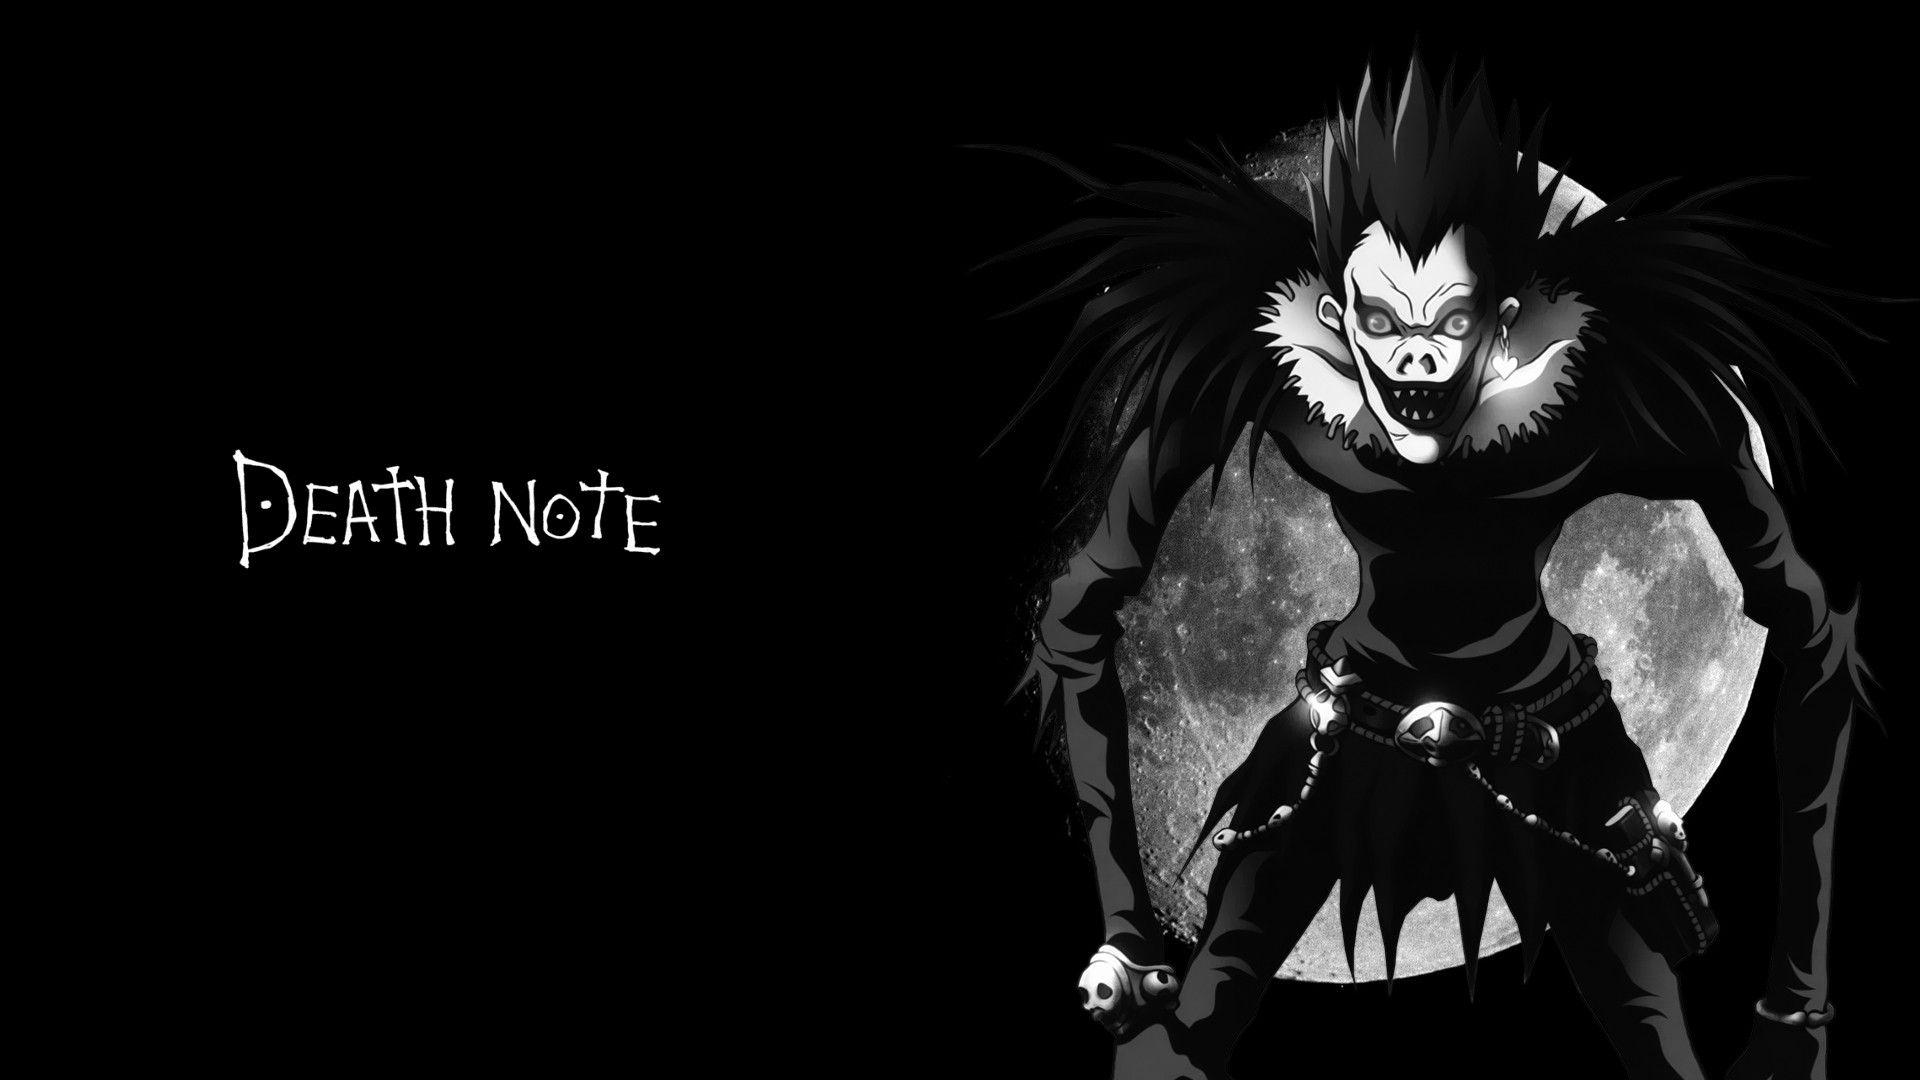 Death Note Ryuk Wallpapers HD